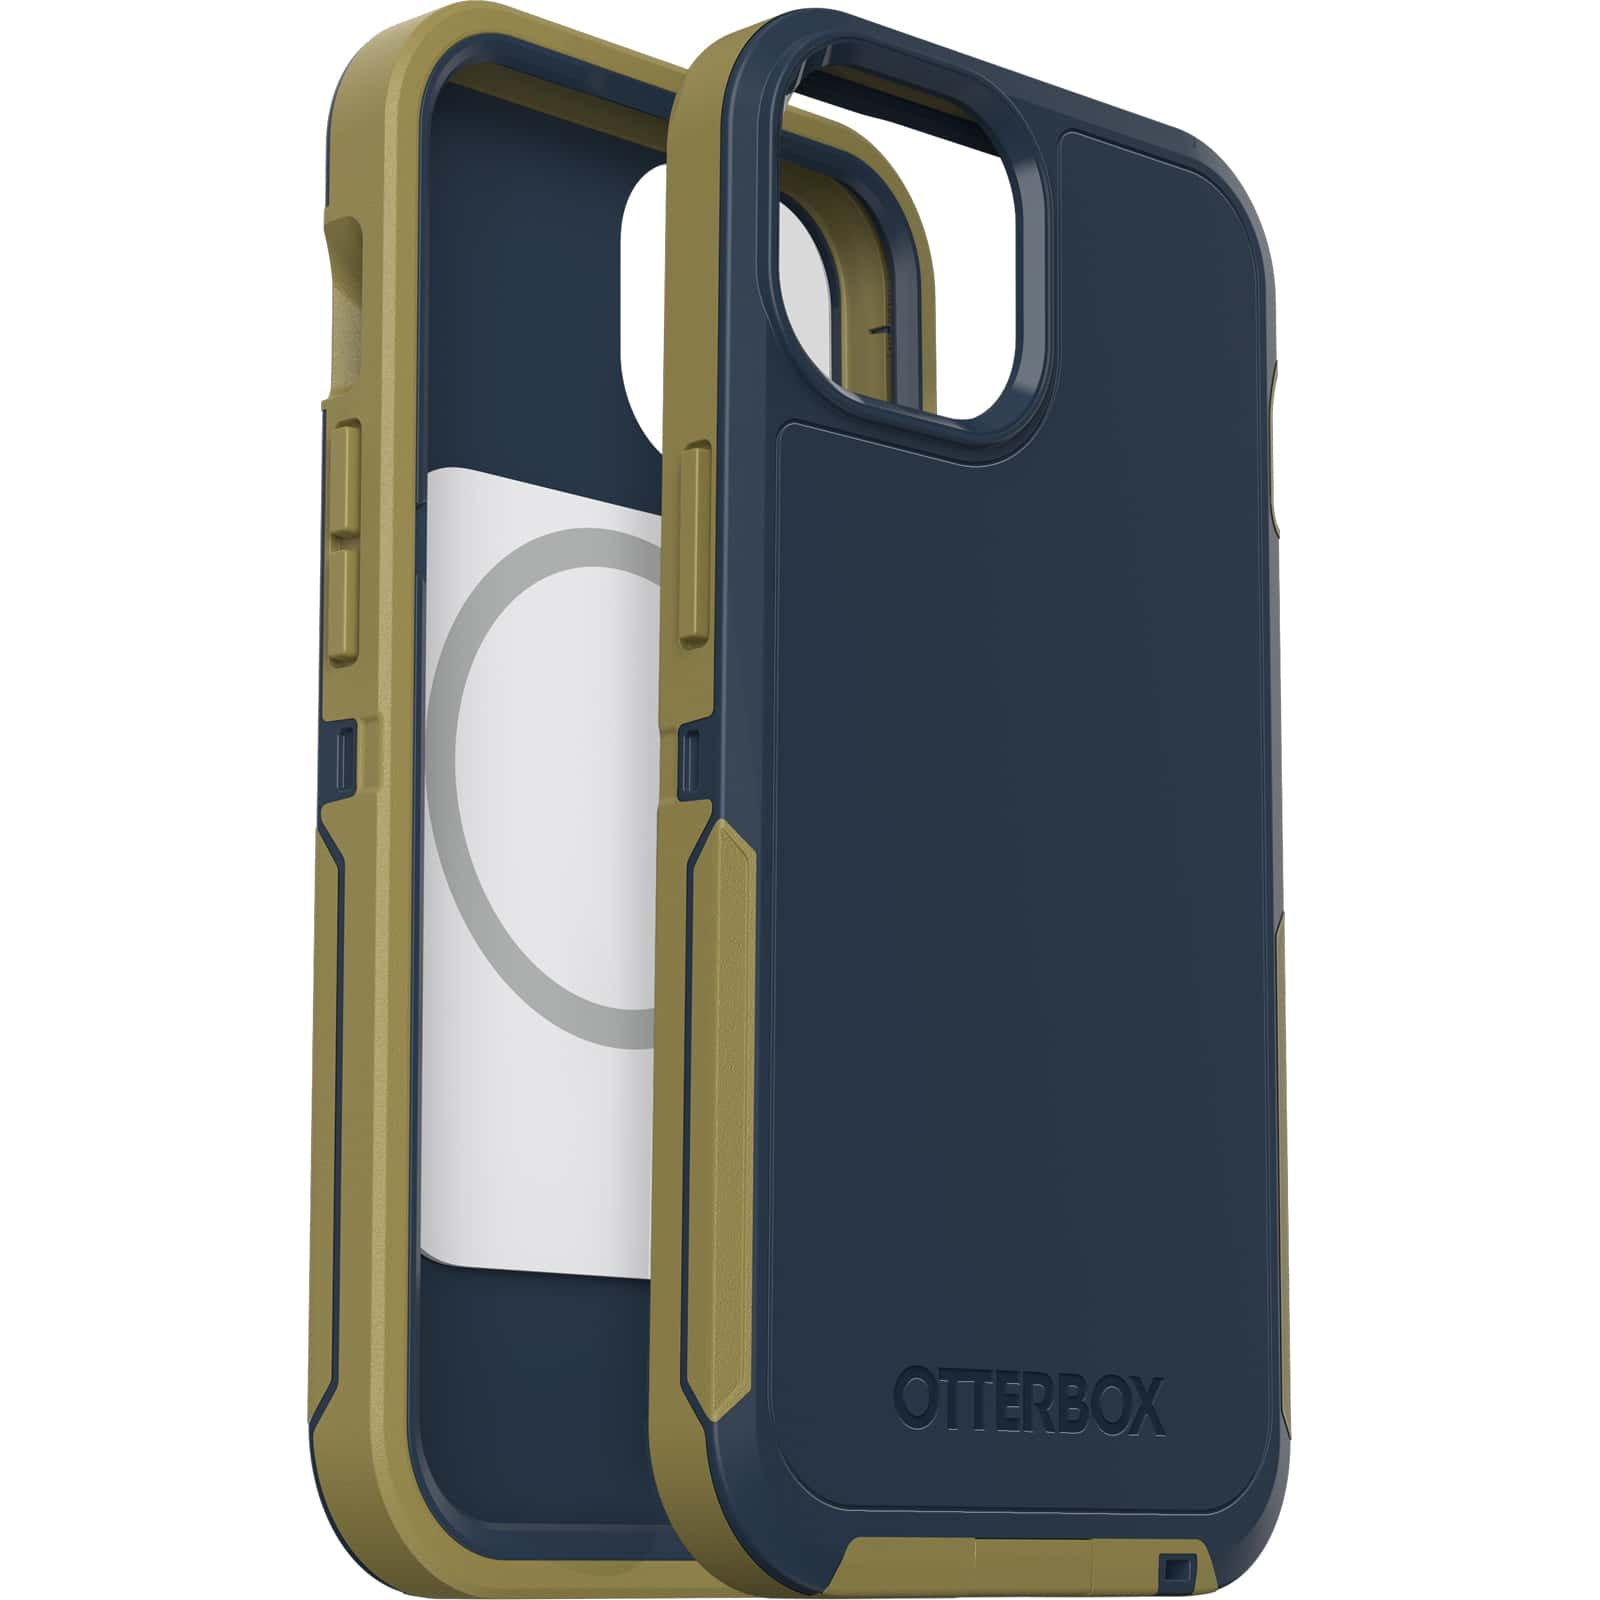 The OtterBox Defender Series Pro XT case defends your iPhone 13.